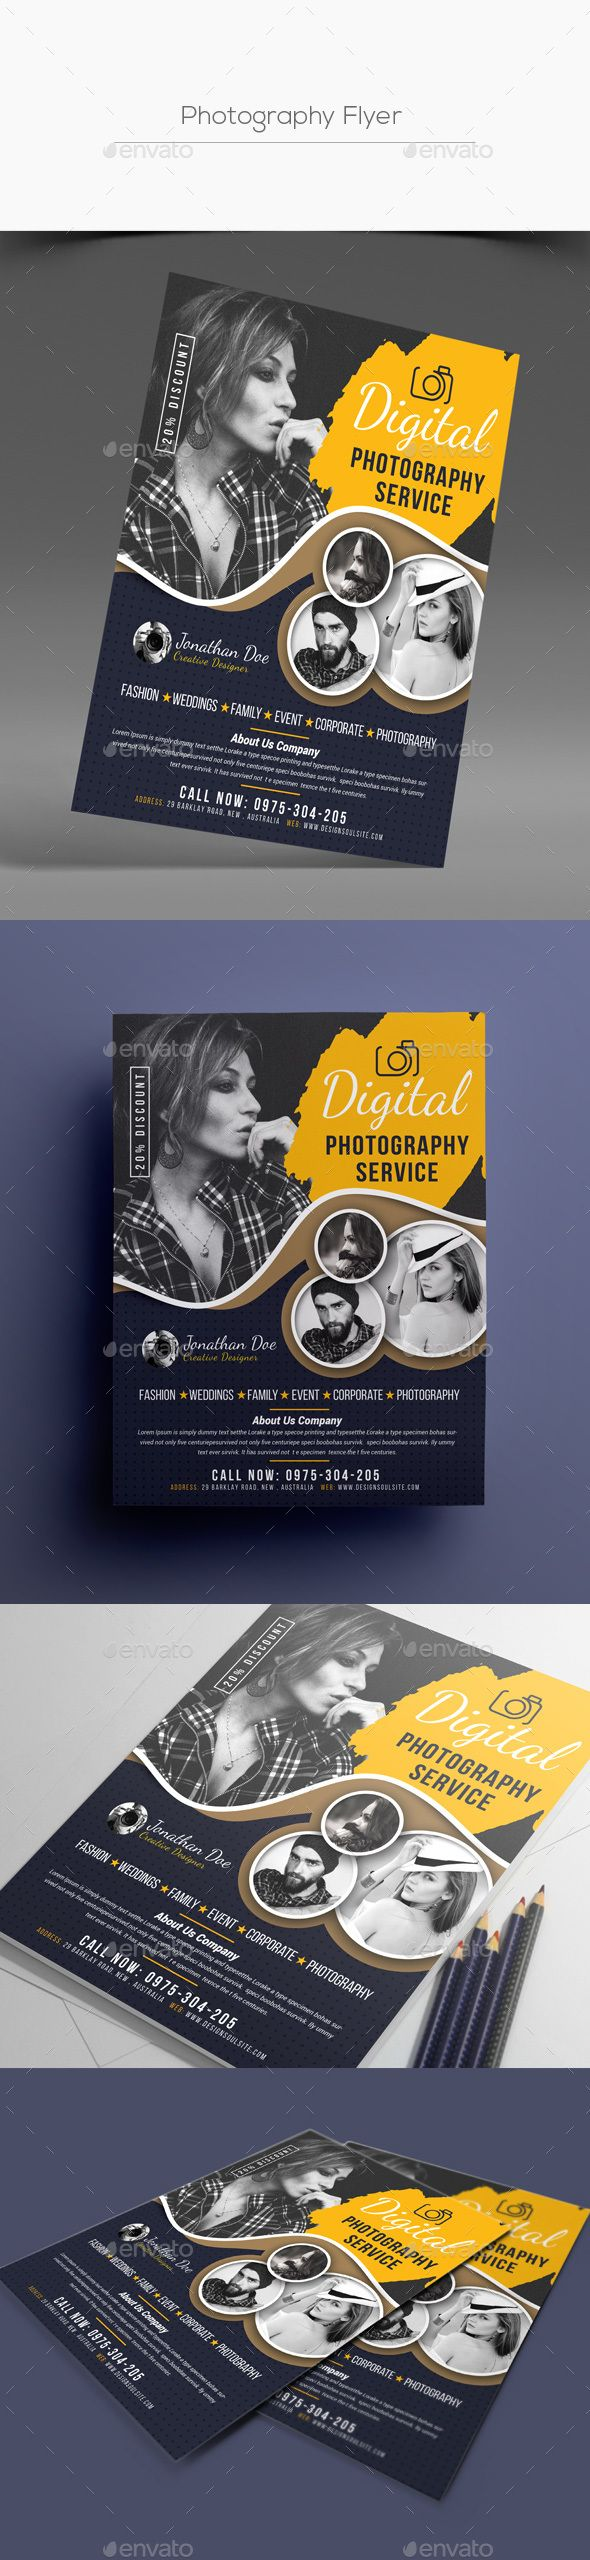 #Photography #Flyer #template - #Photographer #Corporate #business Flyers #design. download: https://graphicriver.net/item/photography-flyer/20288601?ref=yinkira